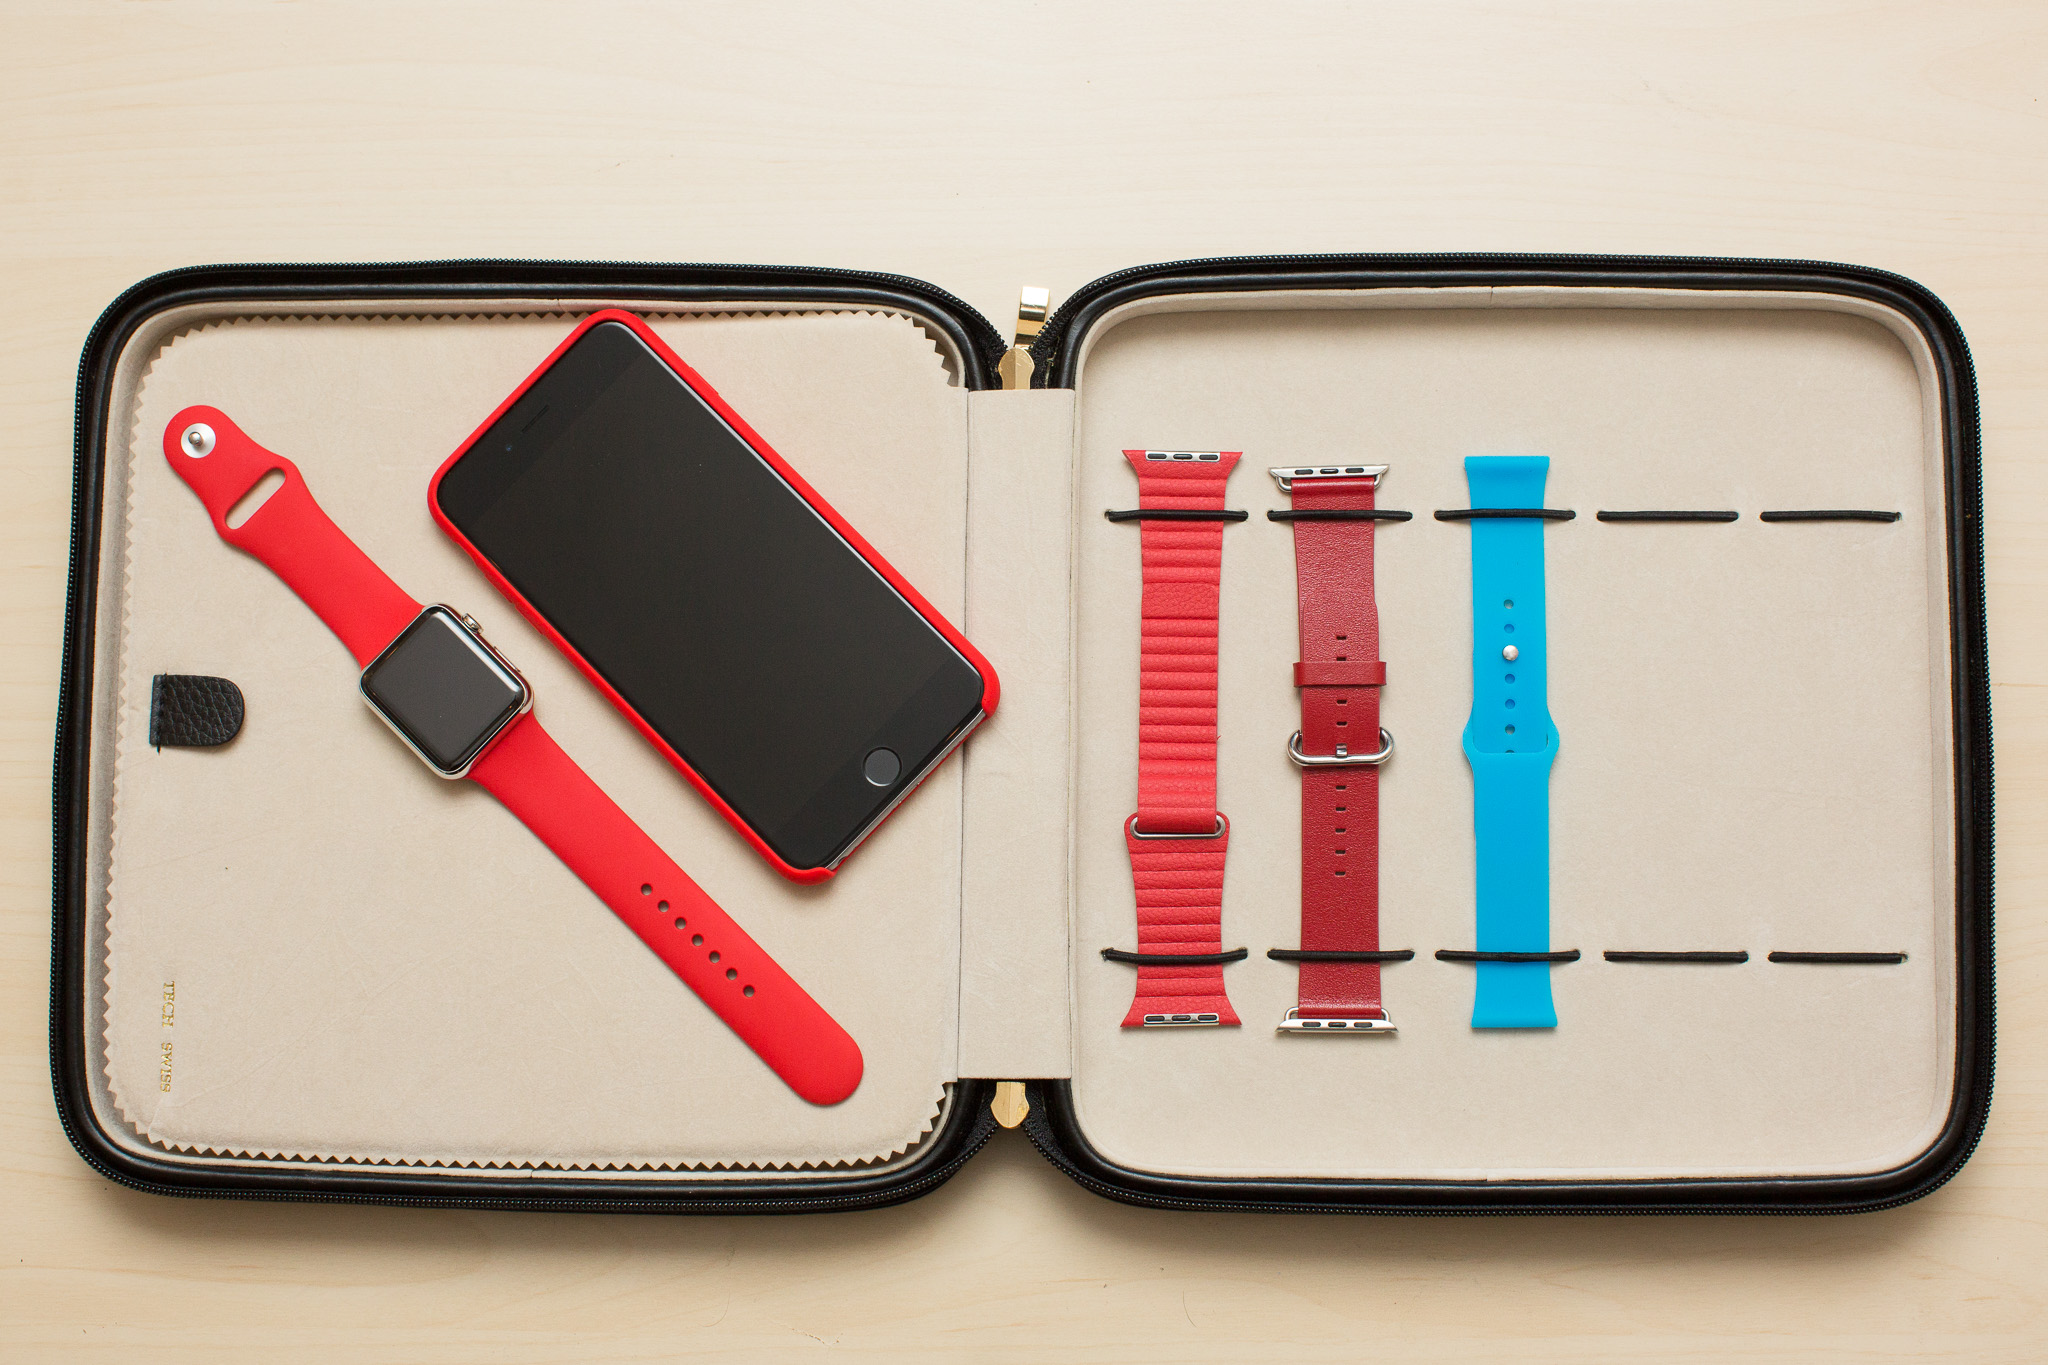 a0dc99e185a57 Our Apple watch strap storage case is back! - TechSwiss